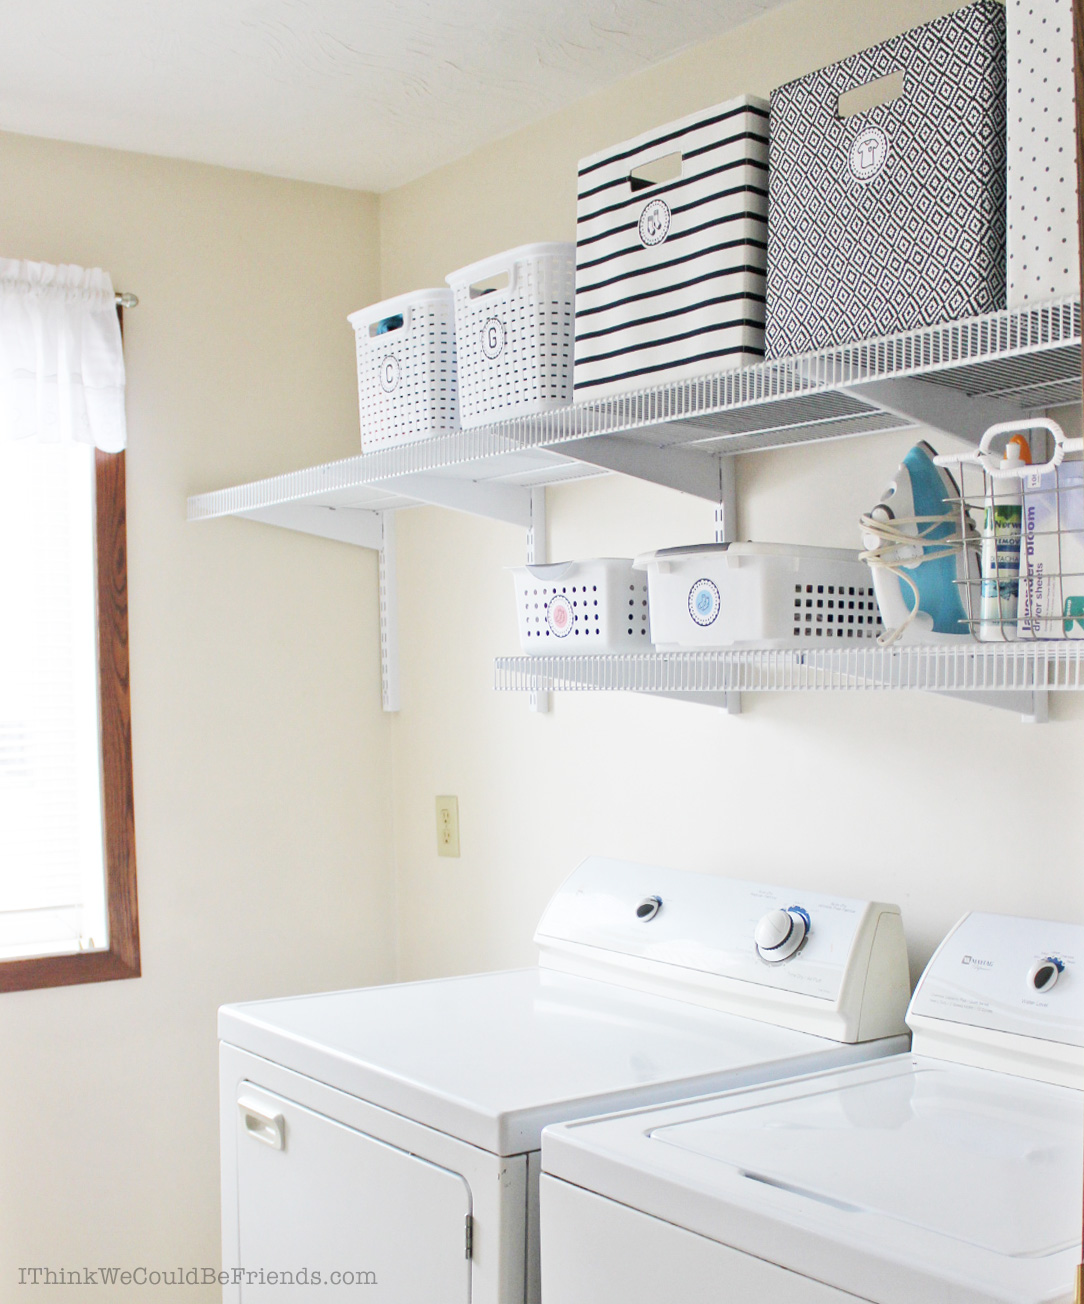 My Laundry System: How I literally cut the time it takes me to do laundry from start to finish IN HALF with 3 simple steps!! (and why I got rid of ALL of our laundry baskets!) #laundry #room #system #organization #tips #save #time